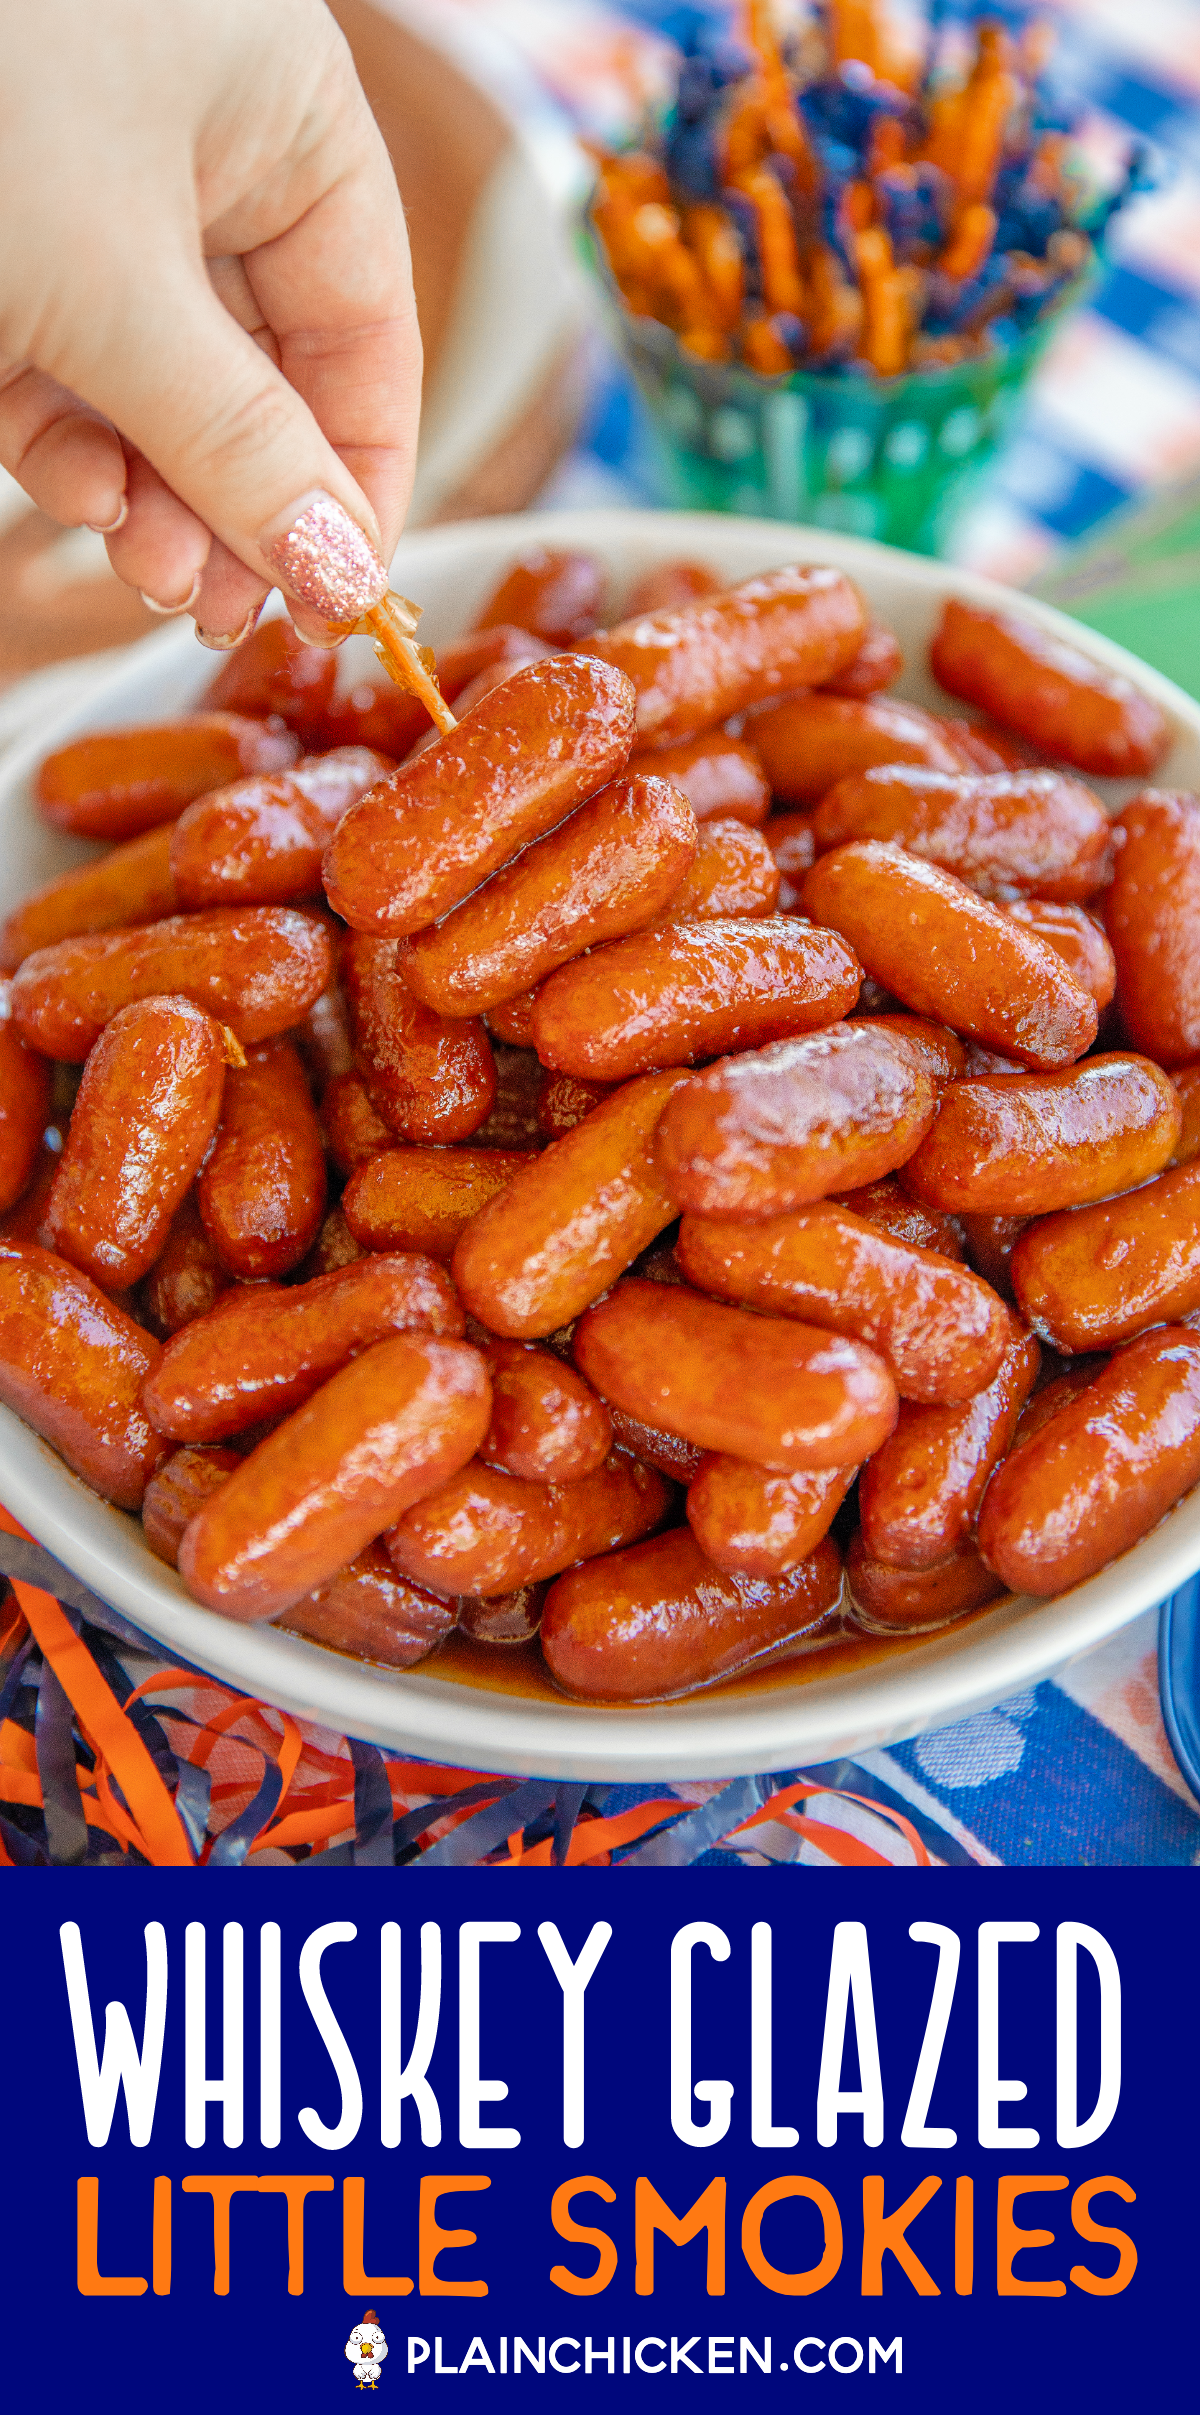 Whiskey Glazed Little Smokies So Easy To Make And Pack A Ton Of Flavor Only 6 Ingredients Lit L Smokies Ketchup Whiskey Glaze Appetizer Recipes Recipes